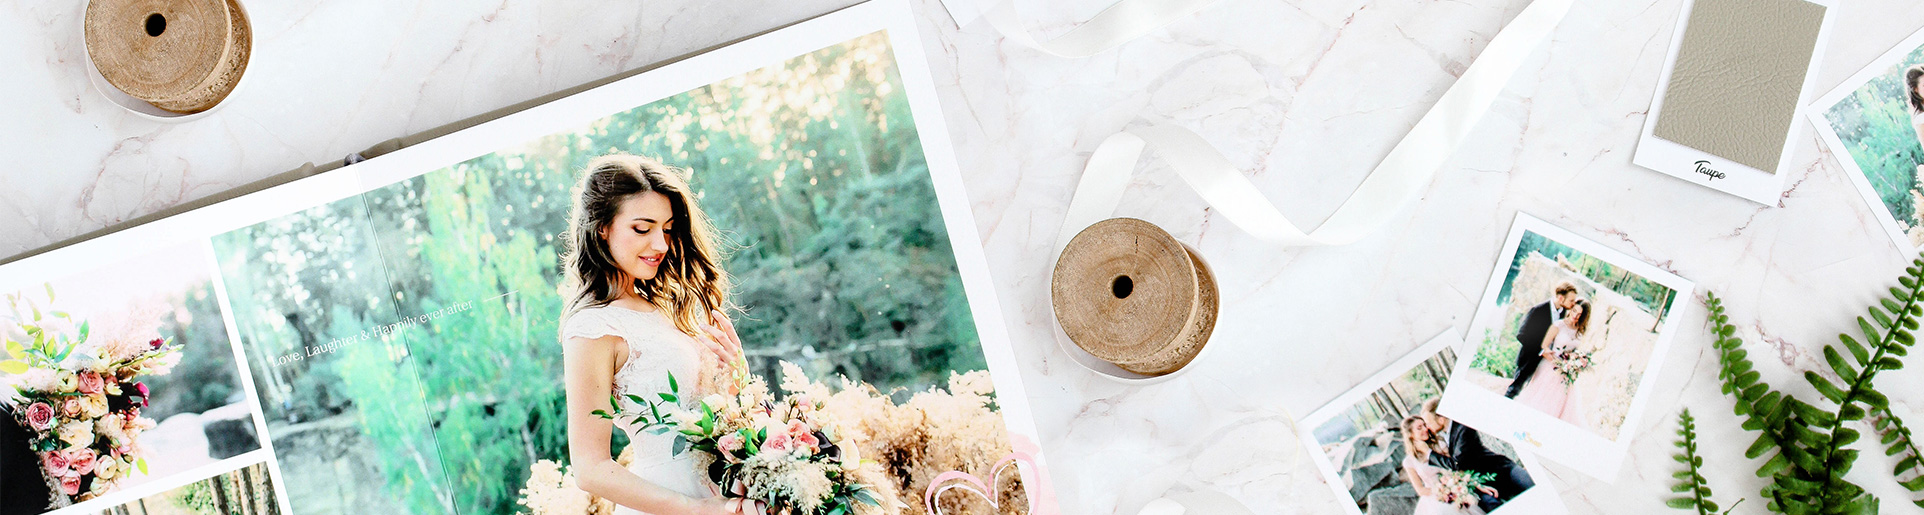 How to create the perfect wedding album or photobook online